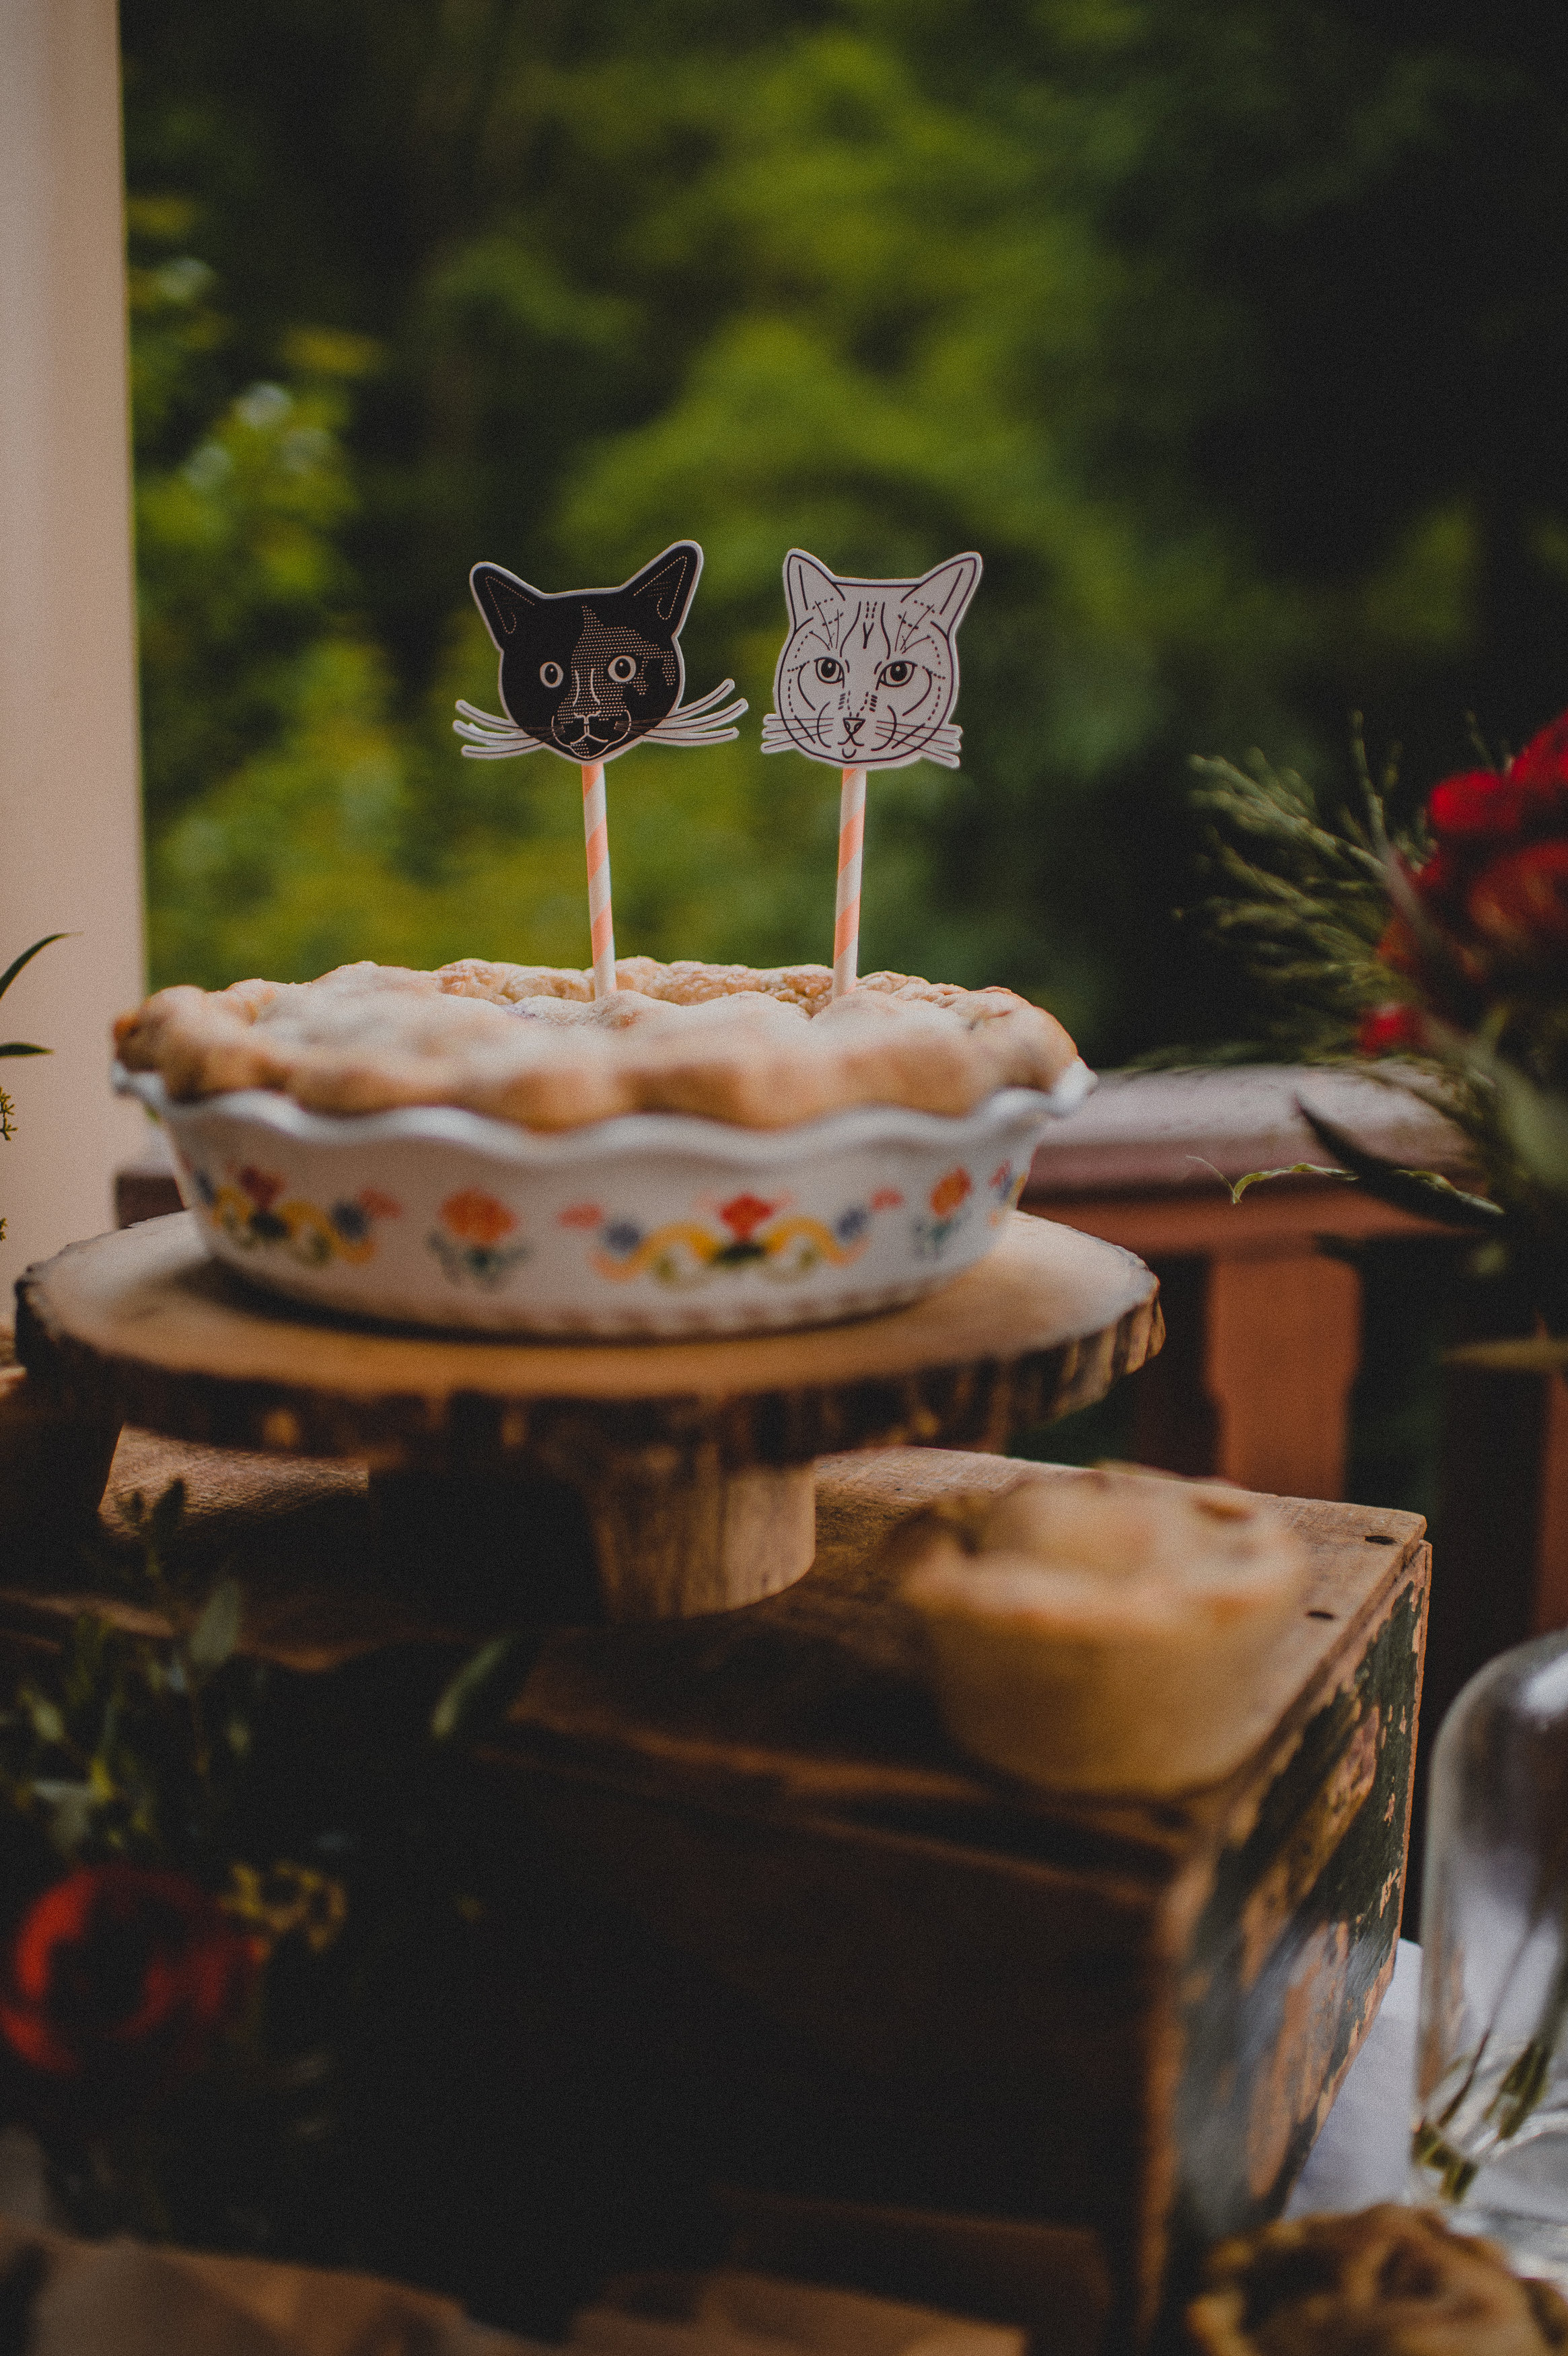 skirven & croft pie with cat faces on toothpicks